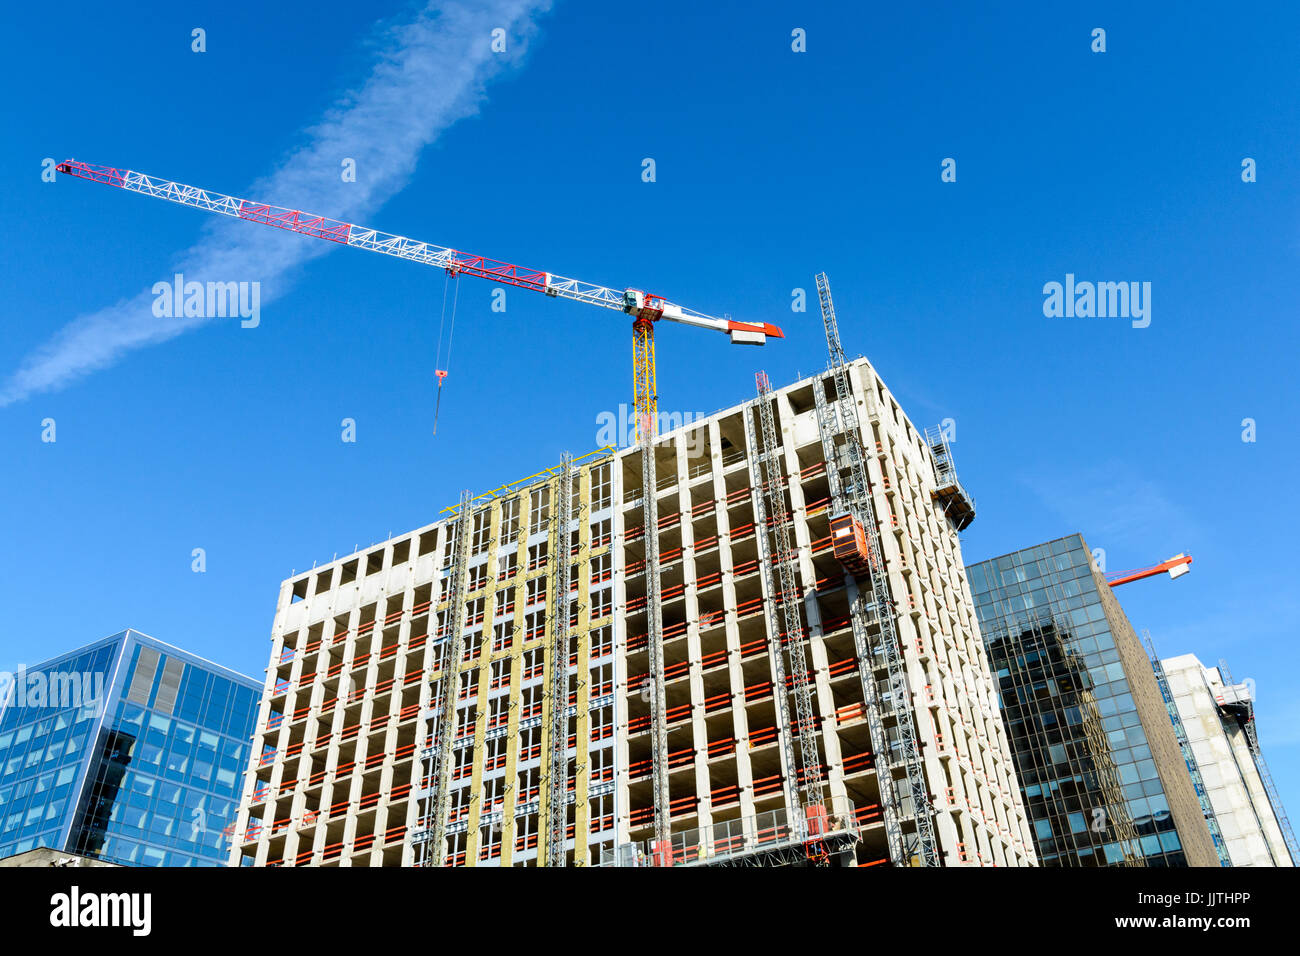 Low angle view of a concrete building under construction between glass buildings with a red and white tower crane Stock Photo